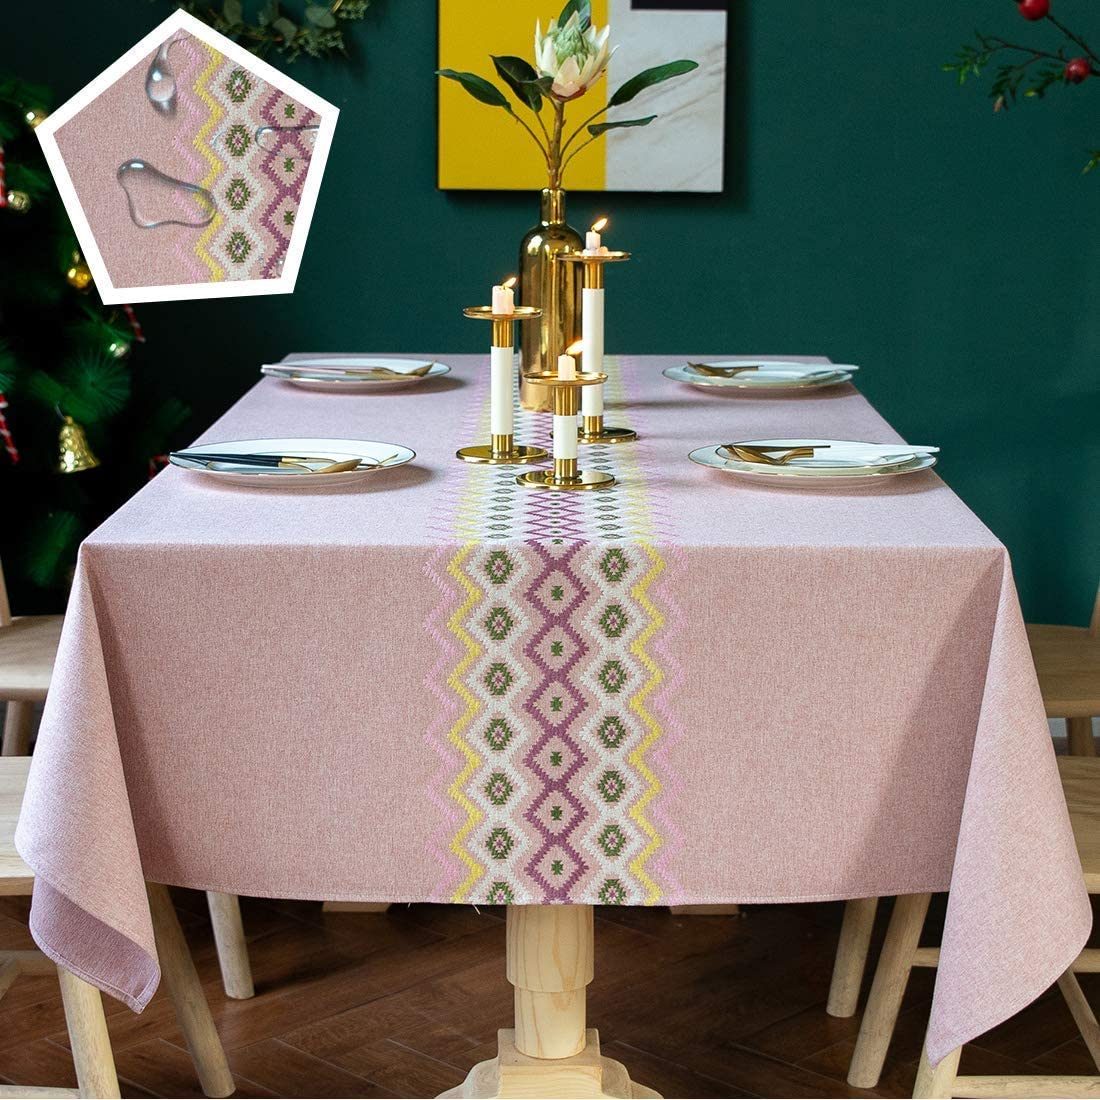 Vedouci Round Table Cloth Wrinkle Free Stitching Tassel Tablecloth Cotton Linen Round Table Cloths Washable Tablecloths for Round Tables for Dining Kitchen (Round,55 inch,Gray): Kitchen & Dining